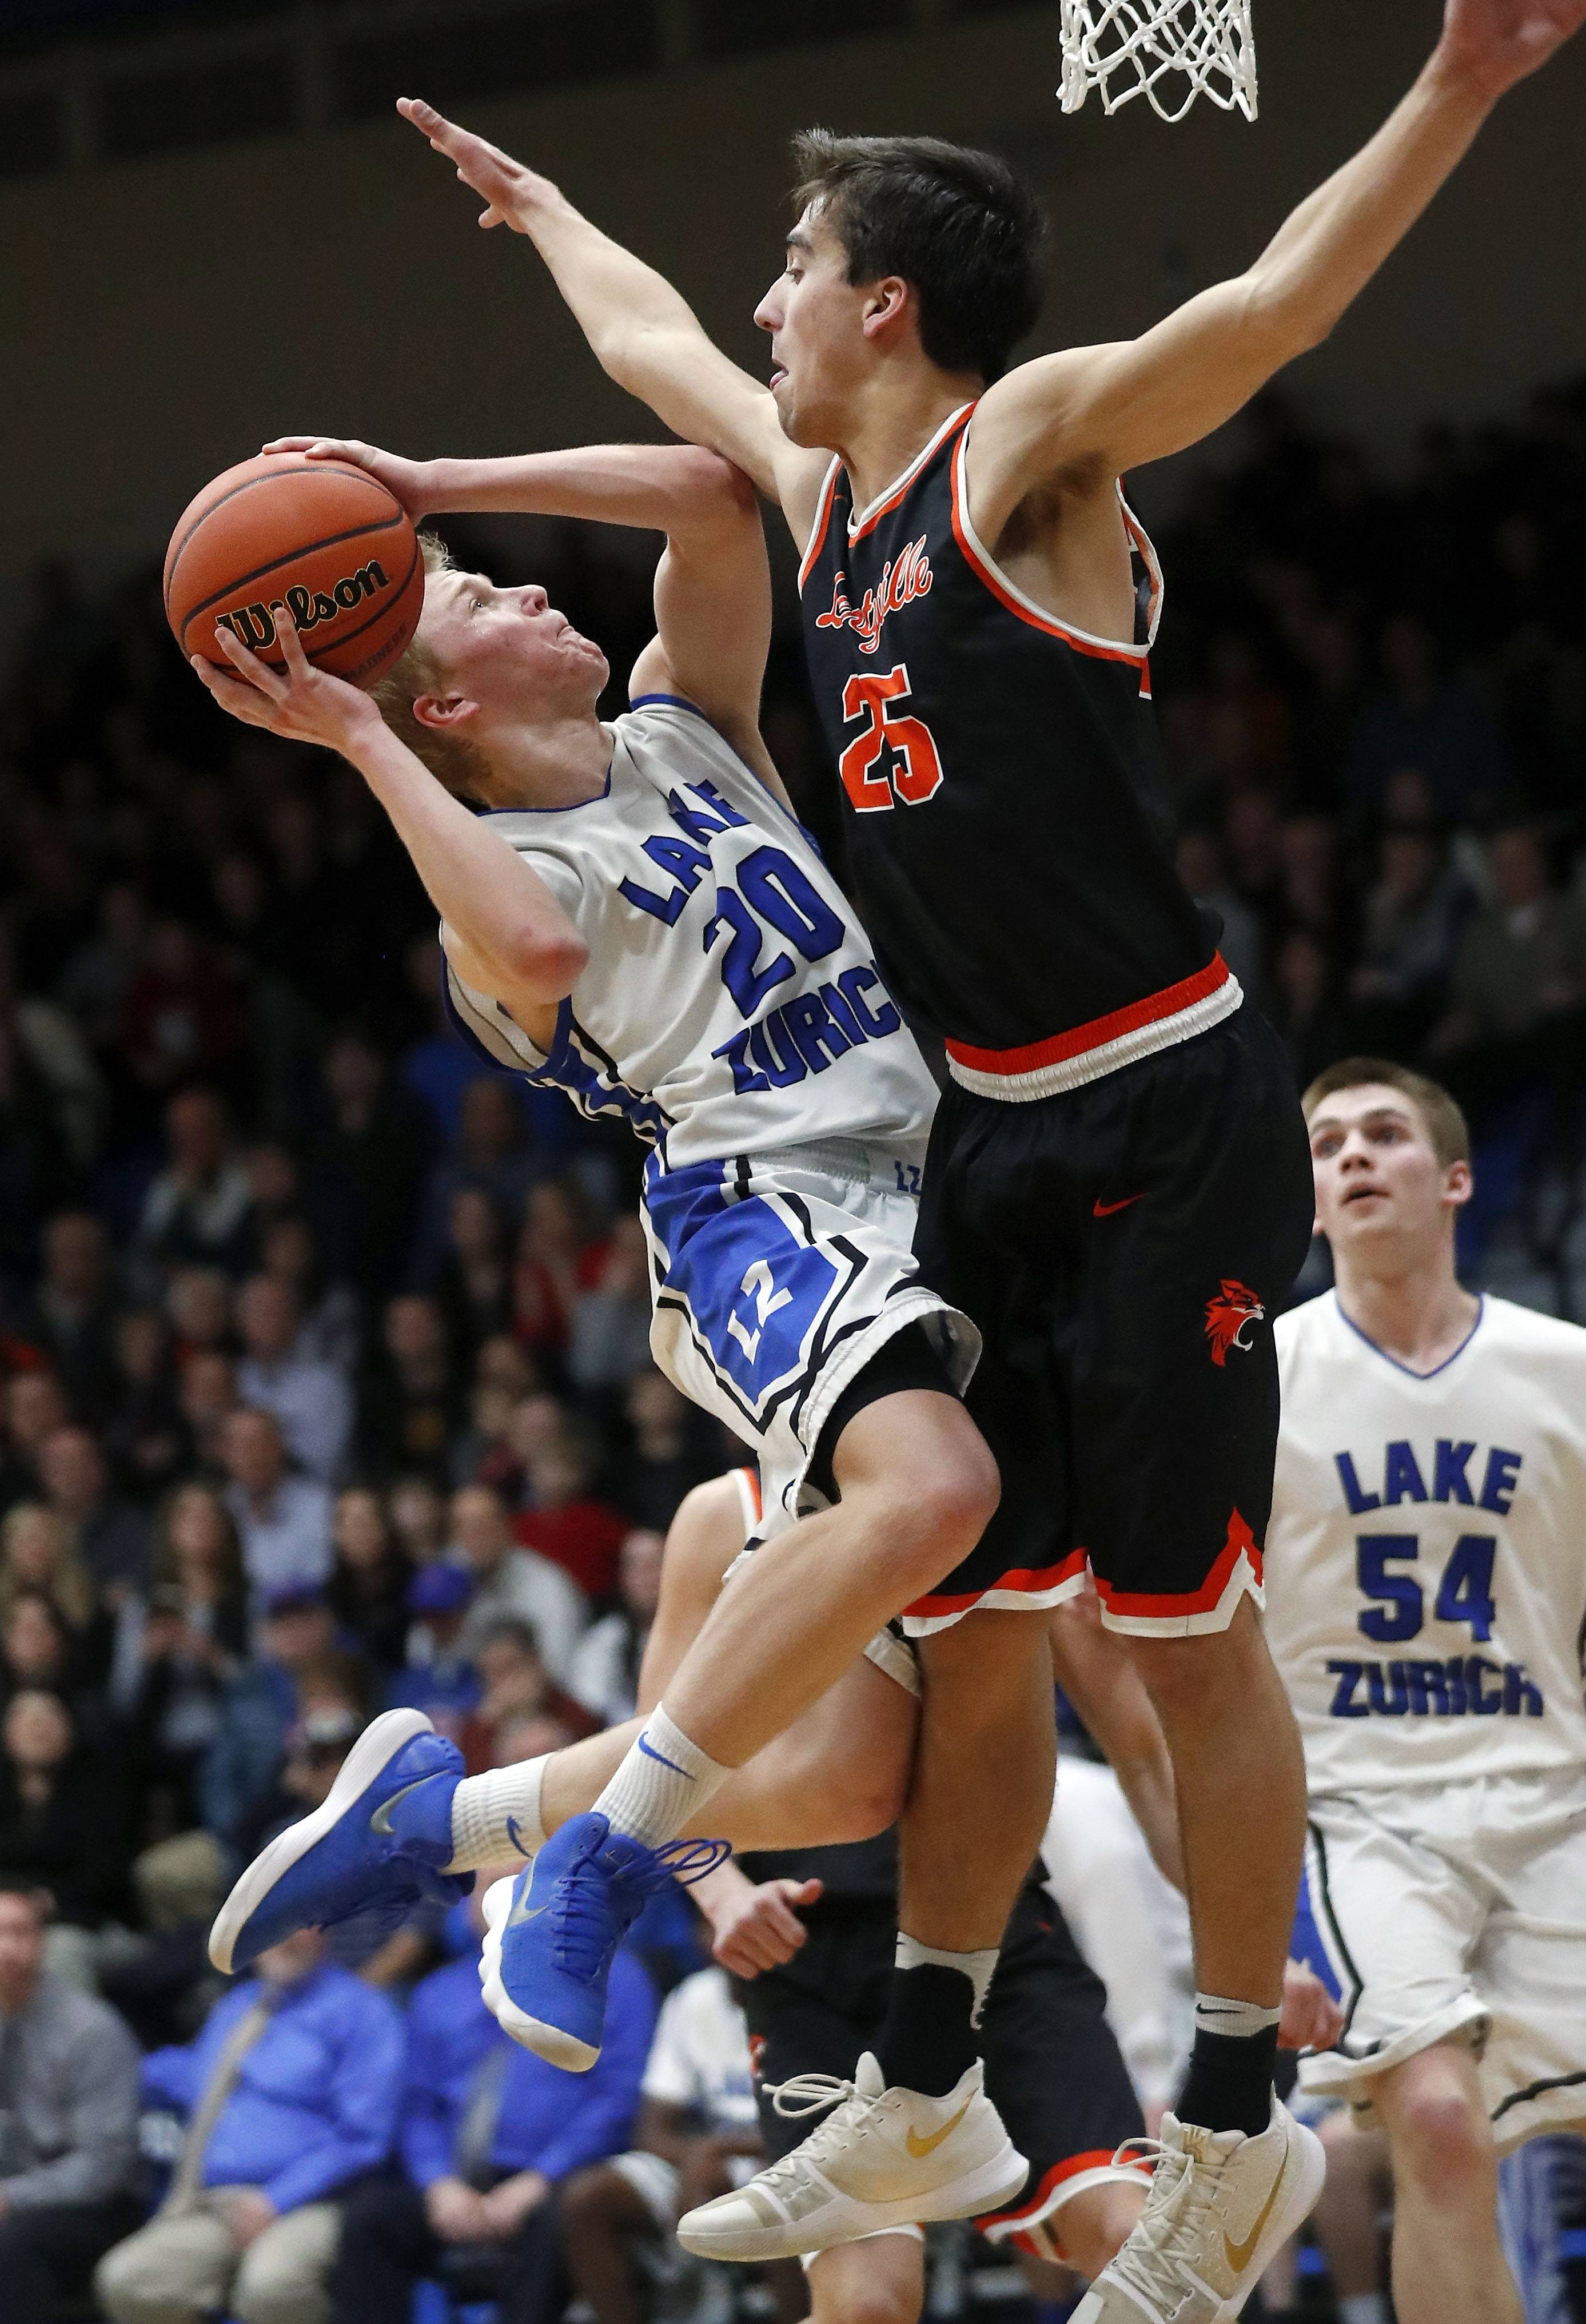 Lake Zurich's Joe Heffernan, left, drives on Libertyville's Chase Eyre during the Class 4A sectional semifinal at Lake Zurich High School on Tuesday.